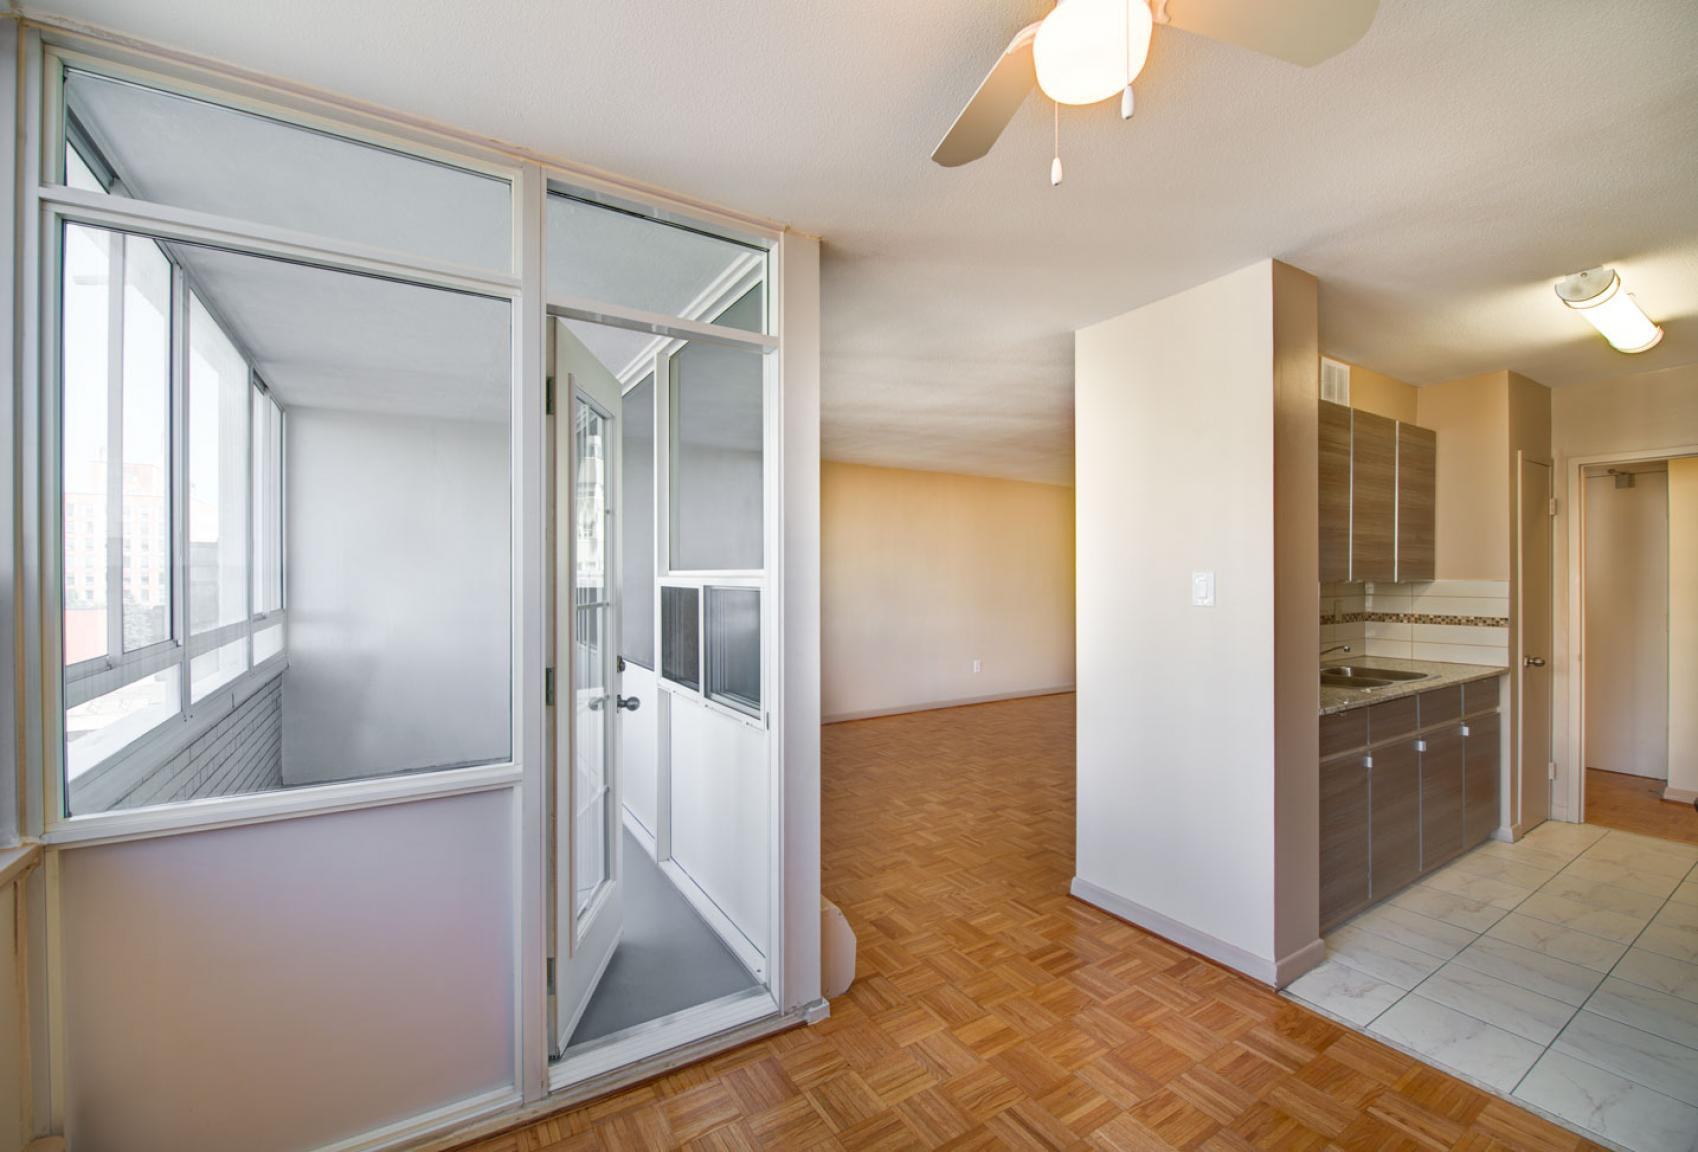 1 bedroom Apartments for rent in Toronto at Holly Tower - Photo 10 - RentersPages – L399824